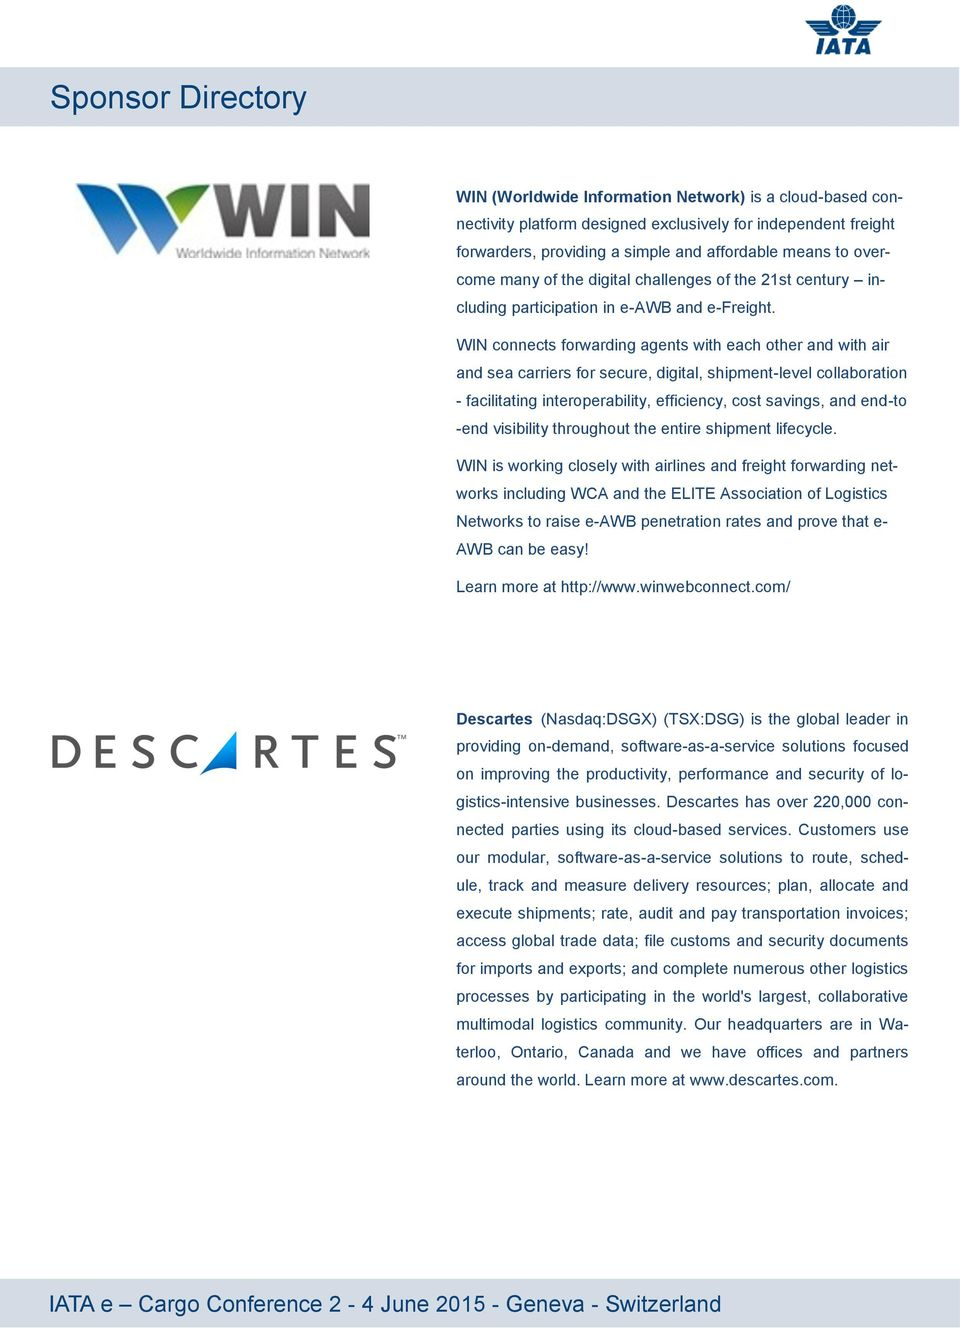 WIN connects forwarding agents with each other and with air and sea carriers for secure, digital, shipment-level collaboration - facilitating interoperability, efficiency, cost savings, and end-to